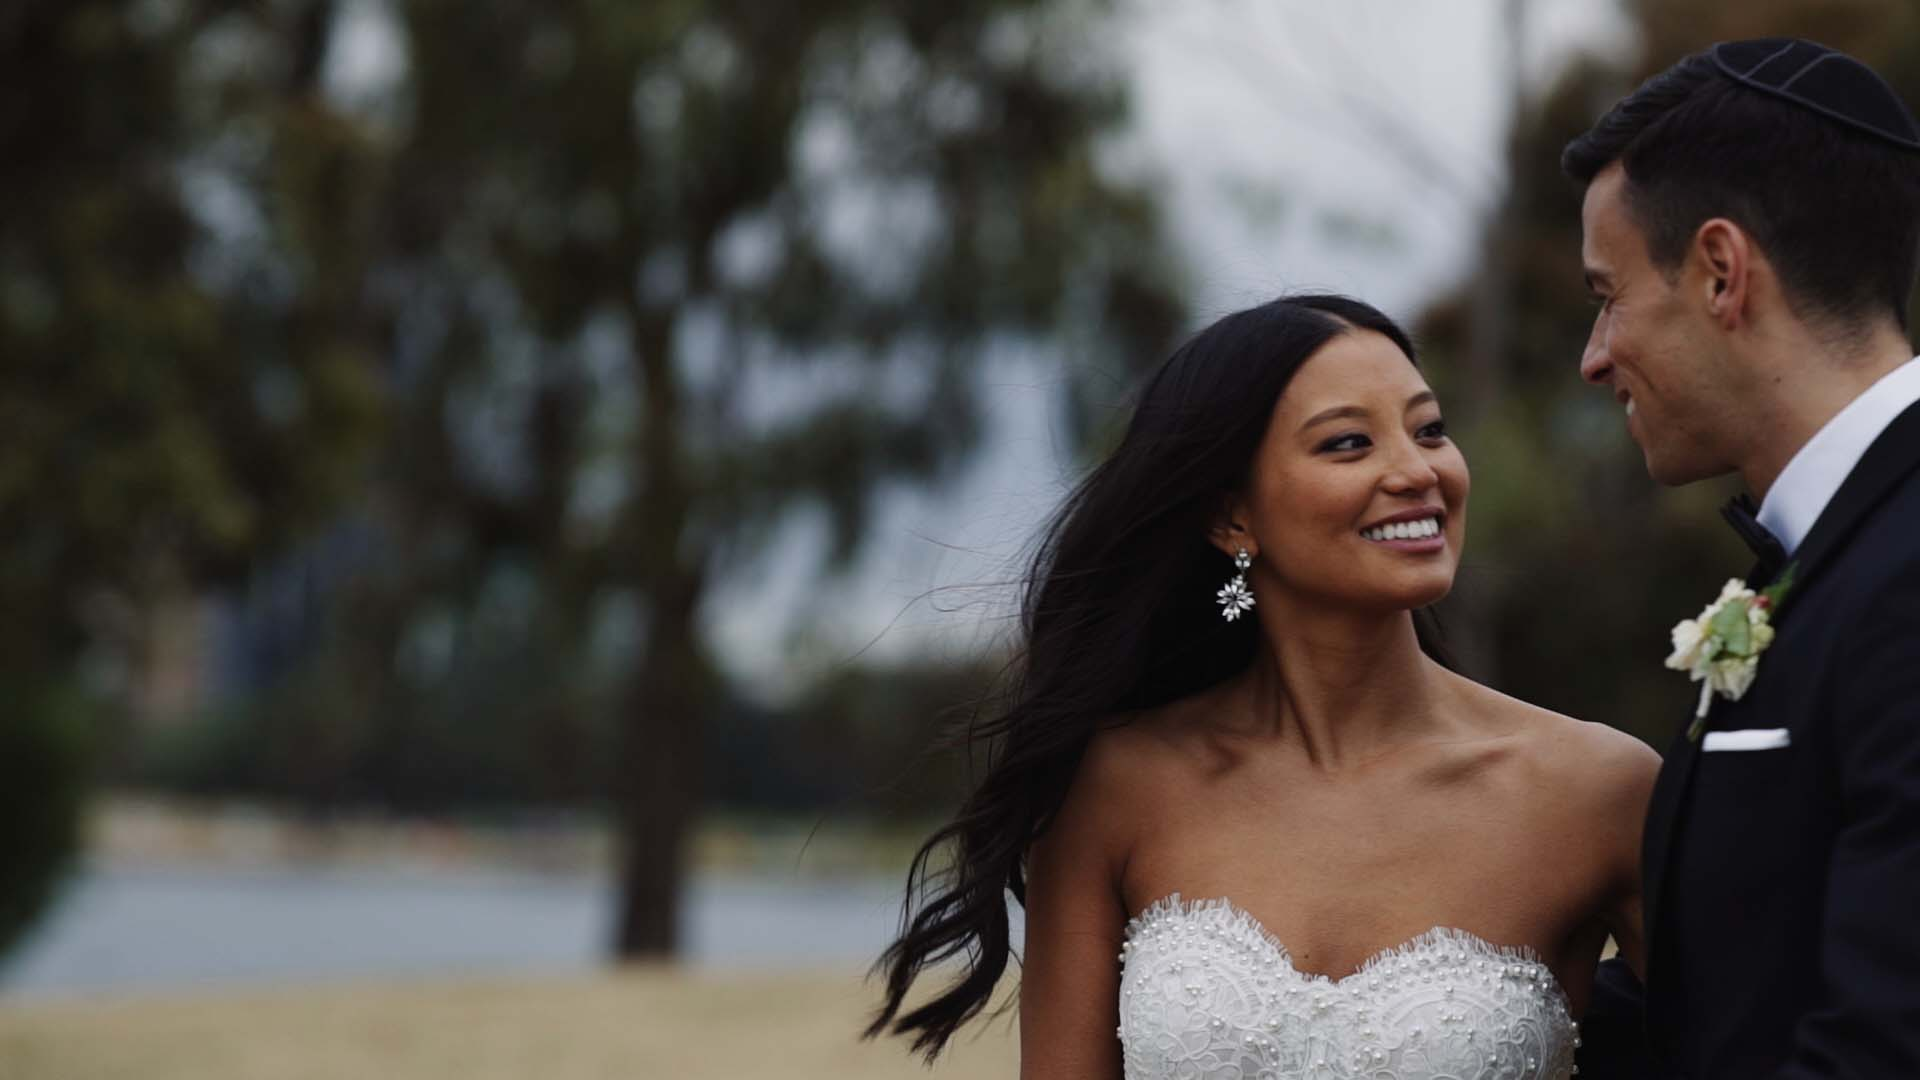 andrew and fiona wedding videography melbourne